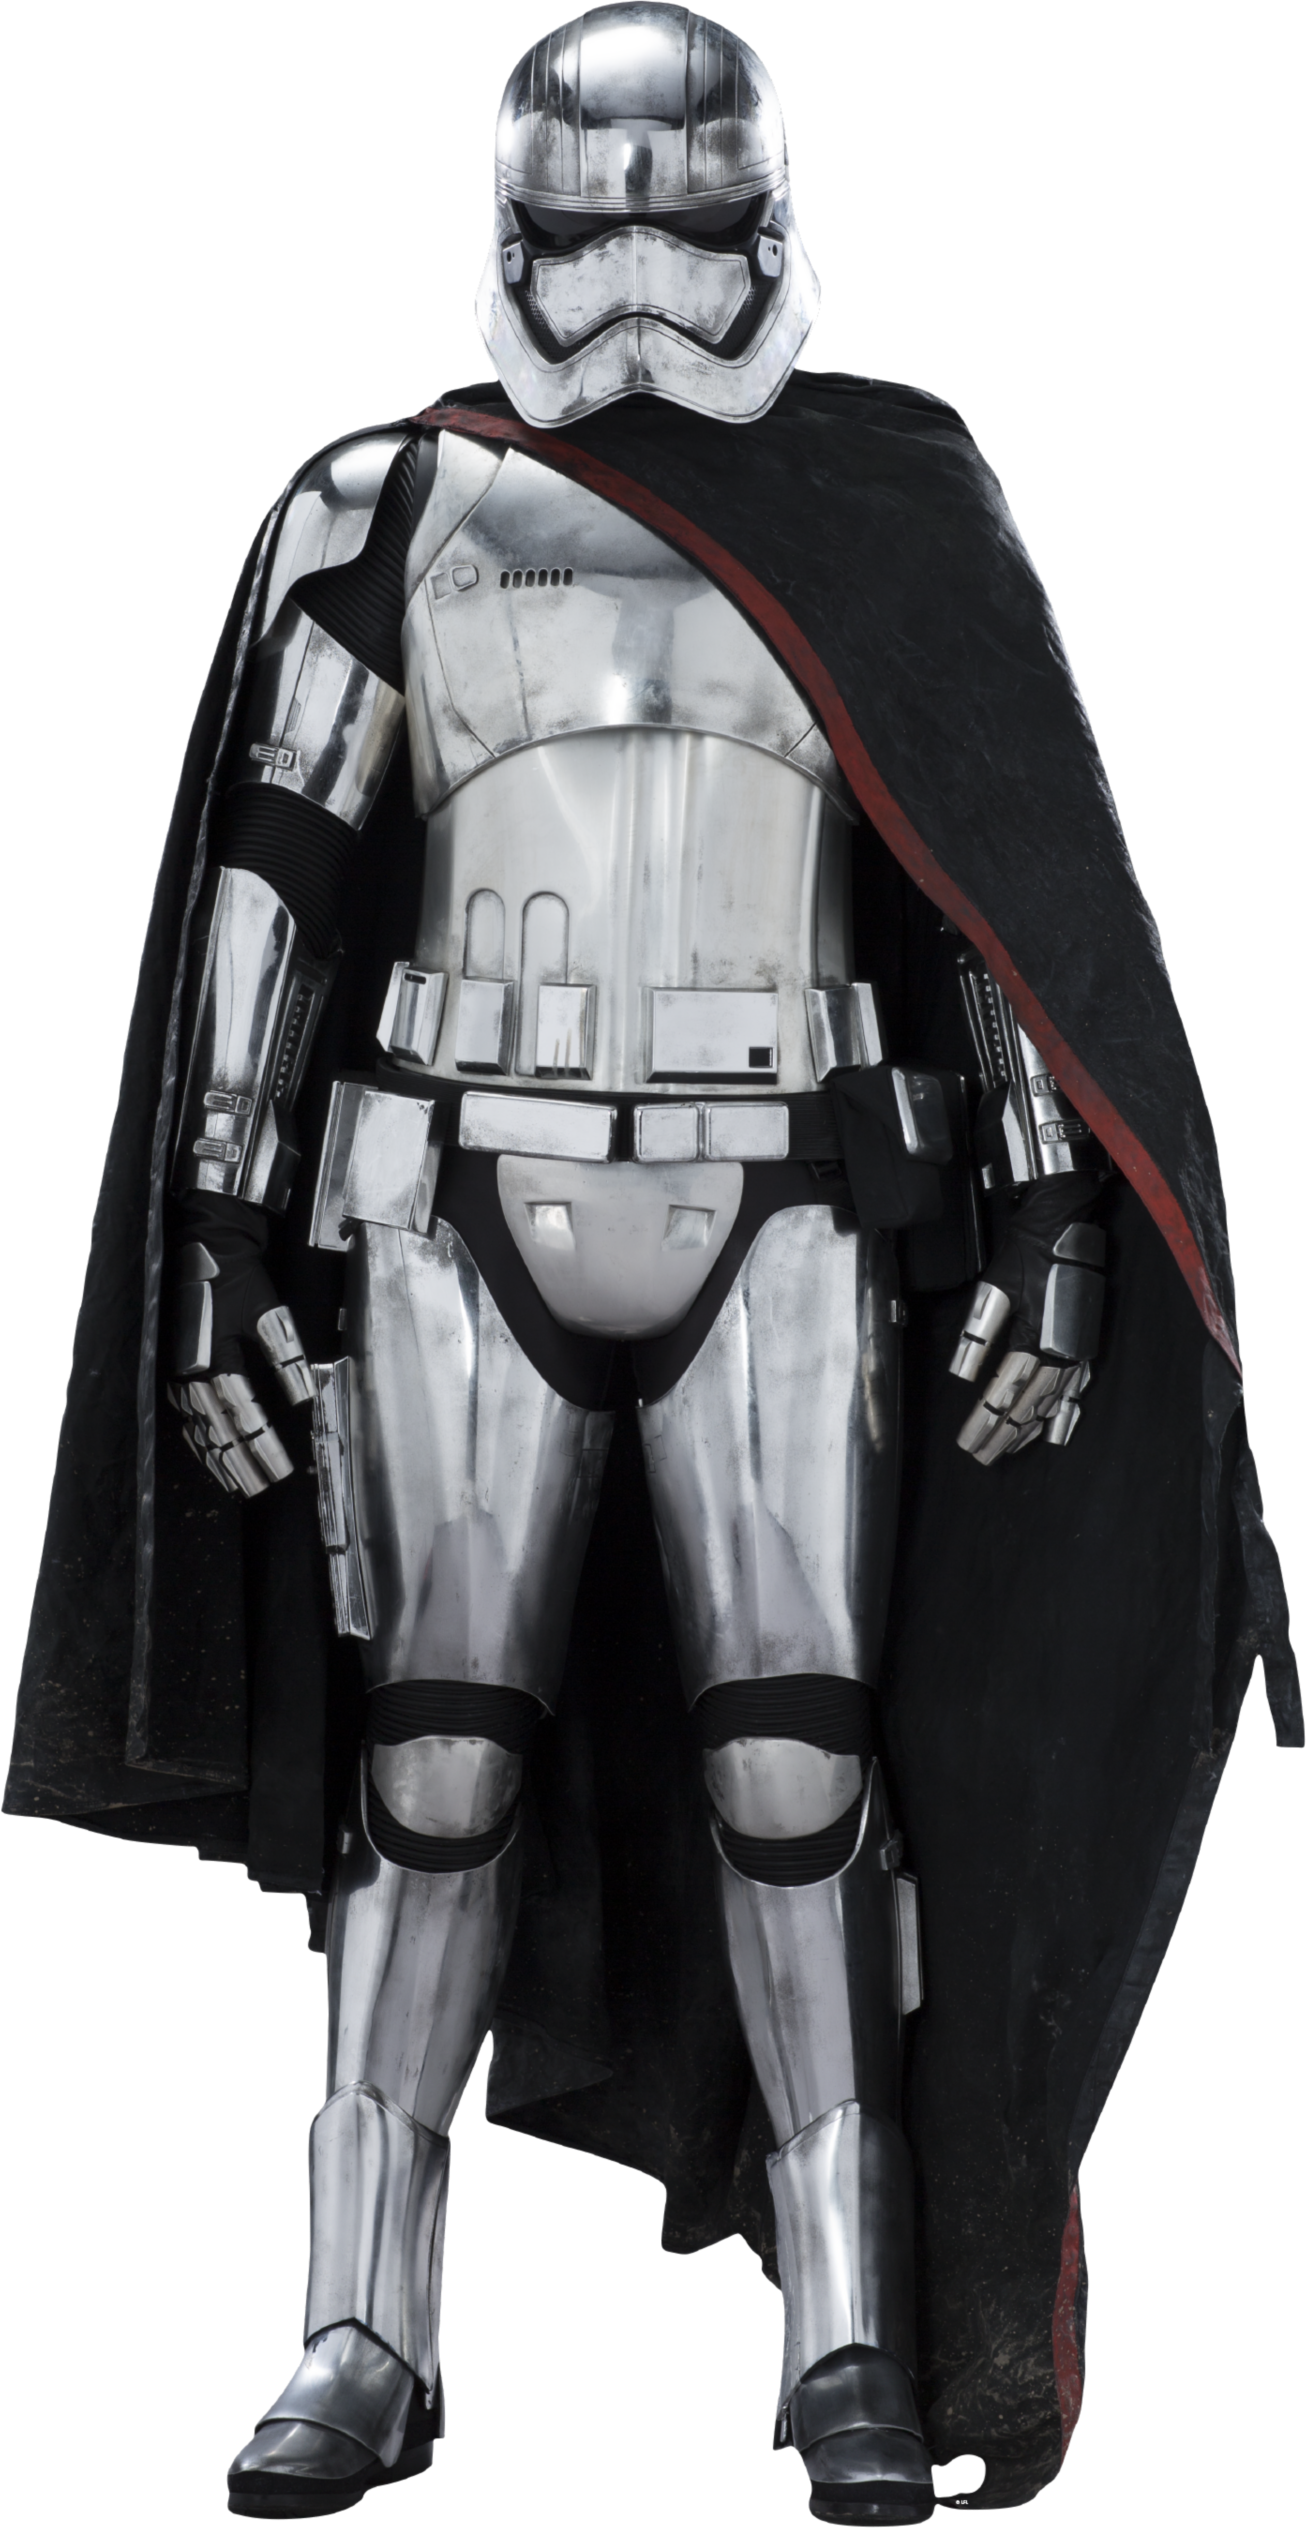 Star Wars Characters Png, png collections at sccpre.cat.